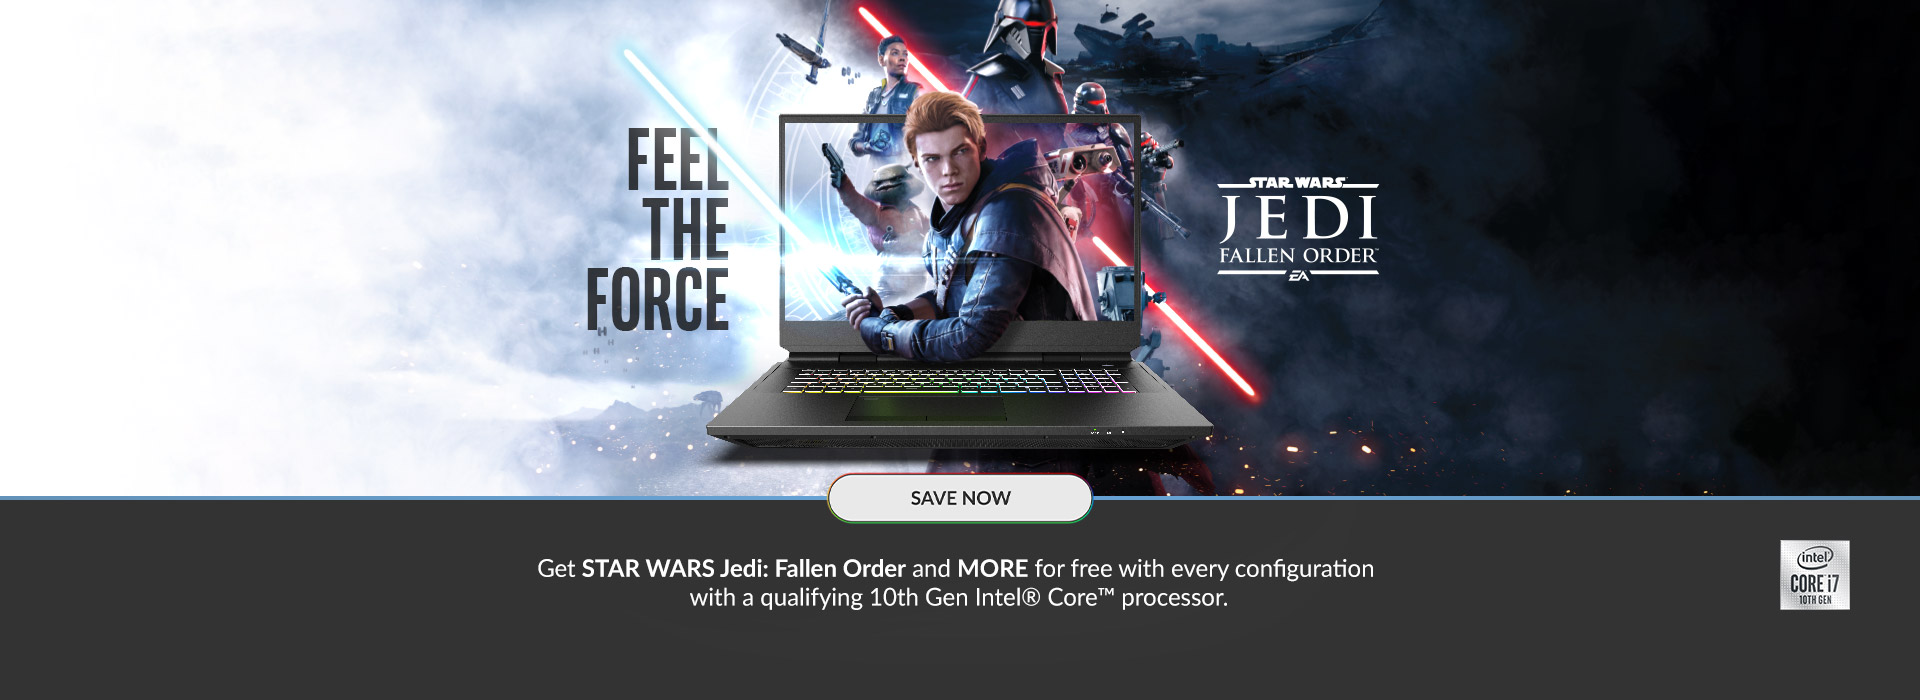 Star Wars Jedi: Fallen Order and more for free